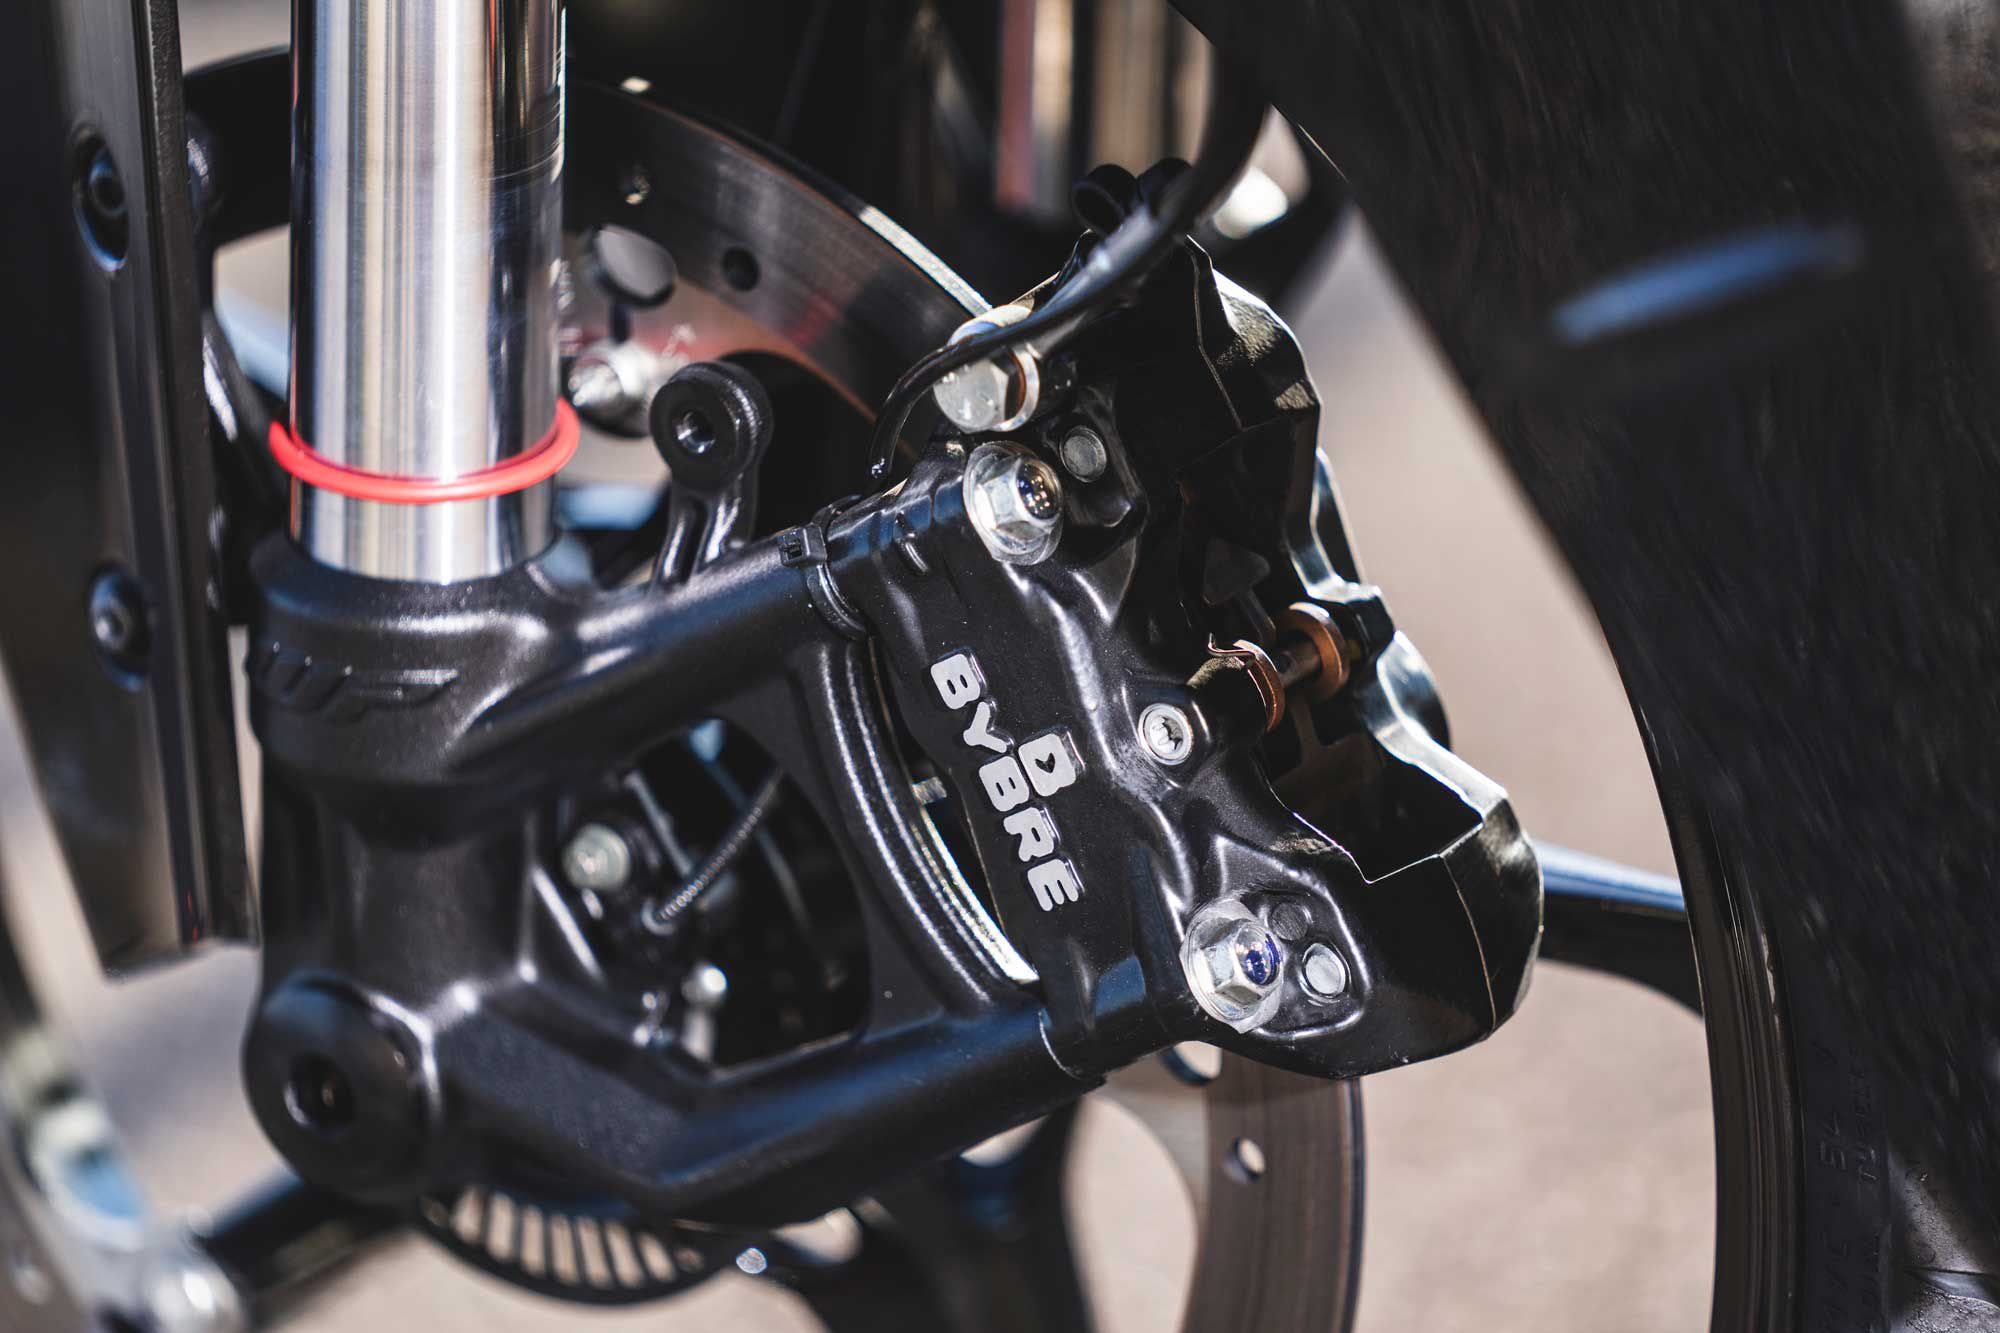 A new set of radial-mounted ByBre braking components adds stopping power to the 2022 RC 390. Lean-angle-sensitive cornering ABS is a highlight of the system.